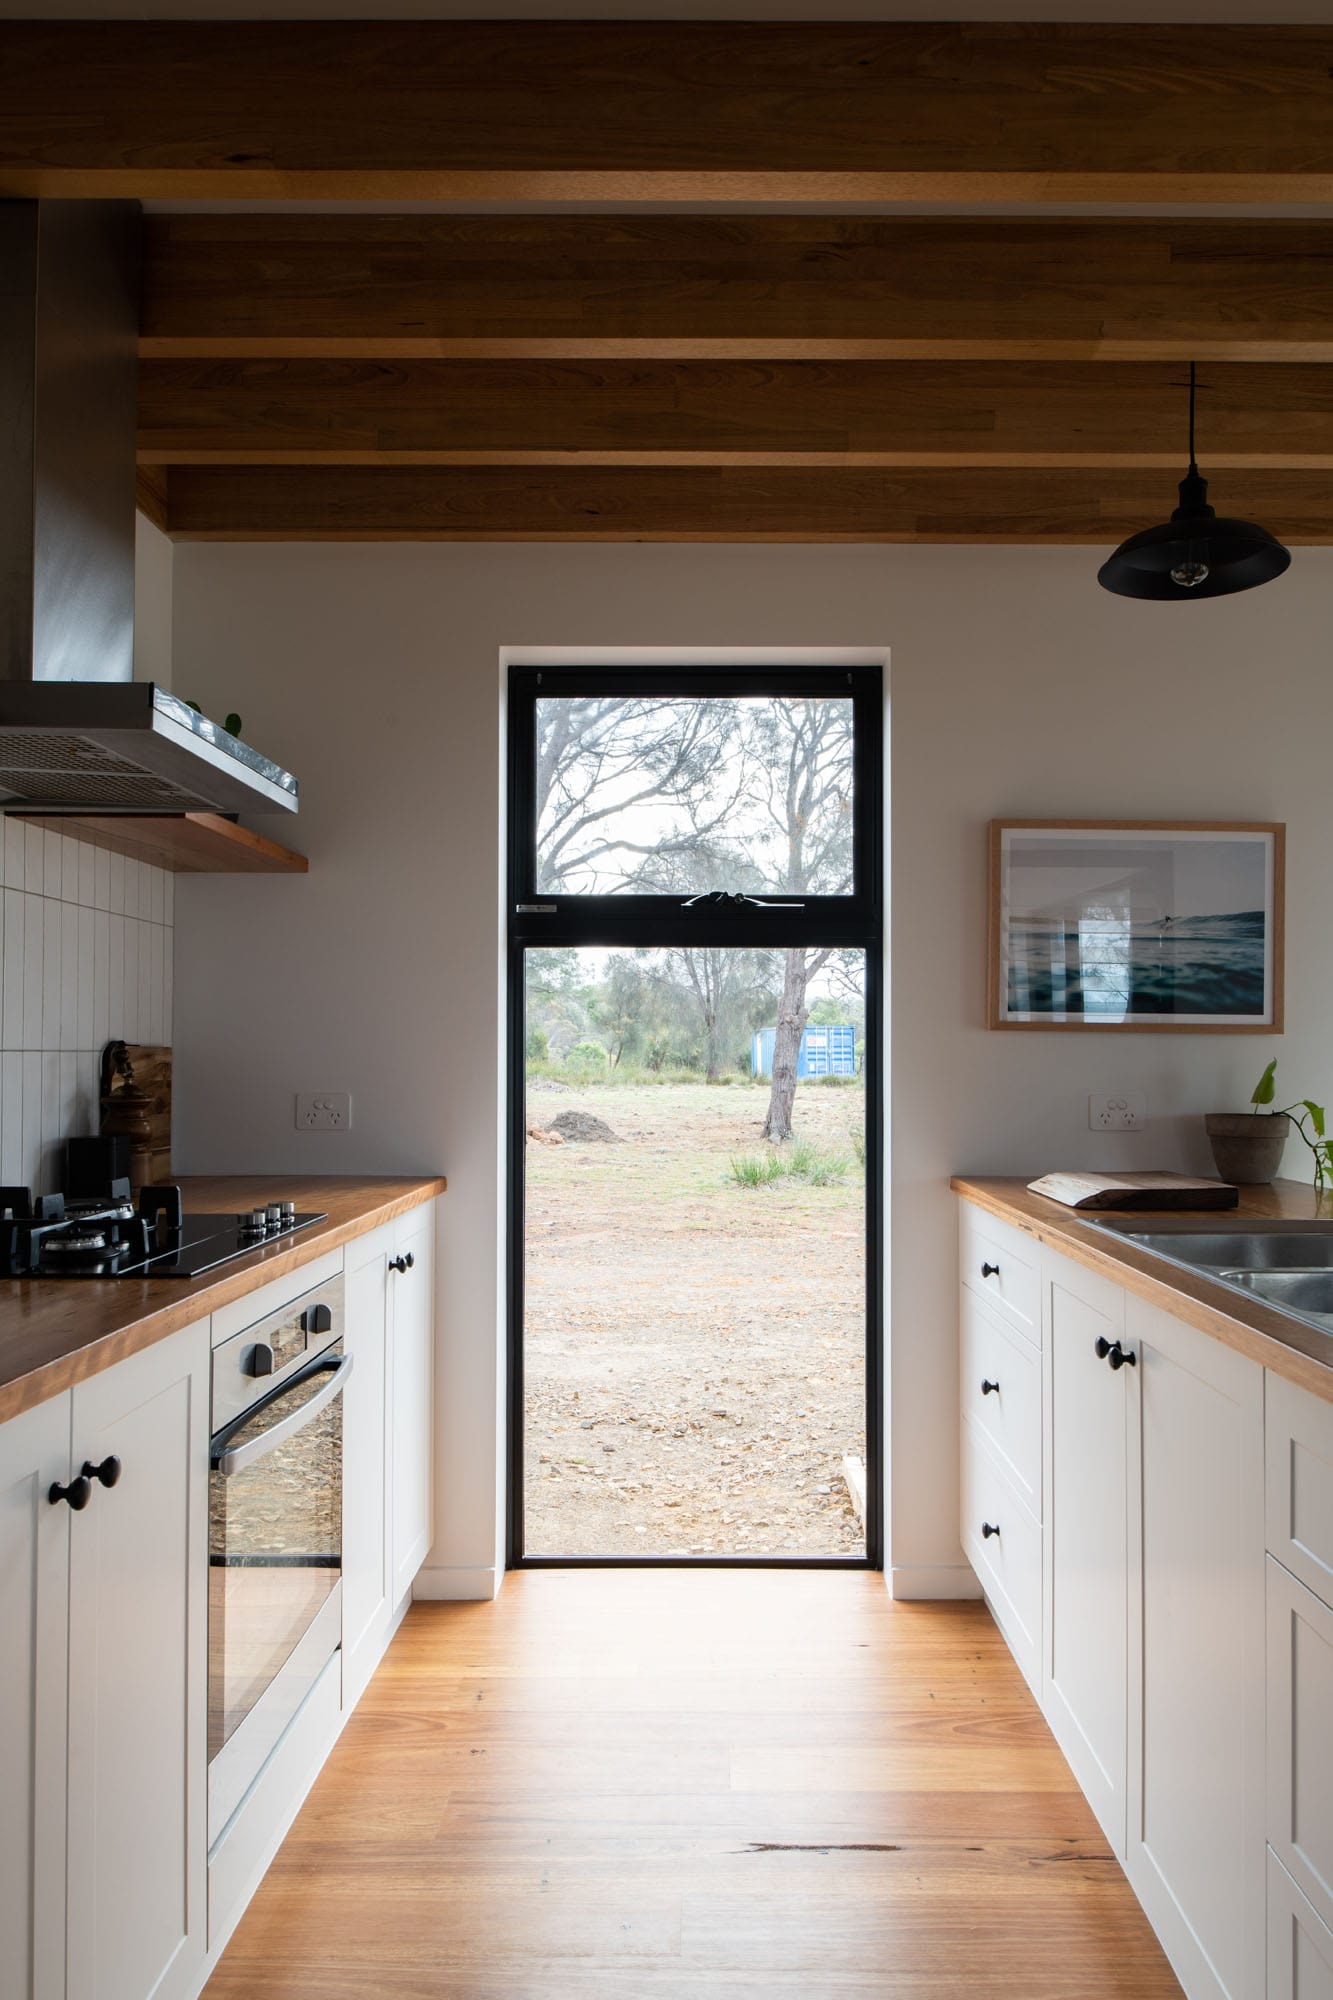 White kitchen cupboards and timber floor of sustainable house